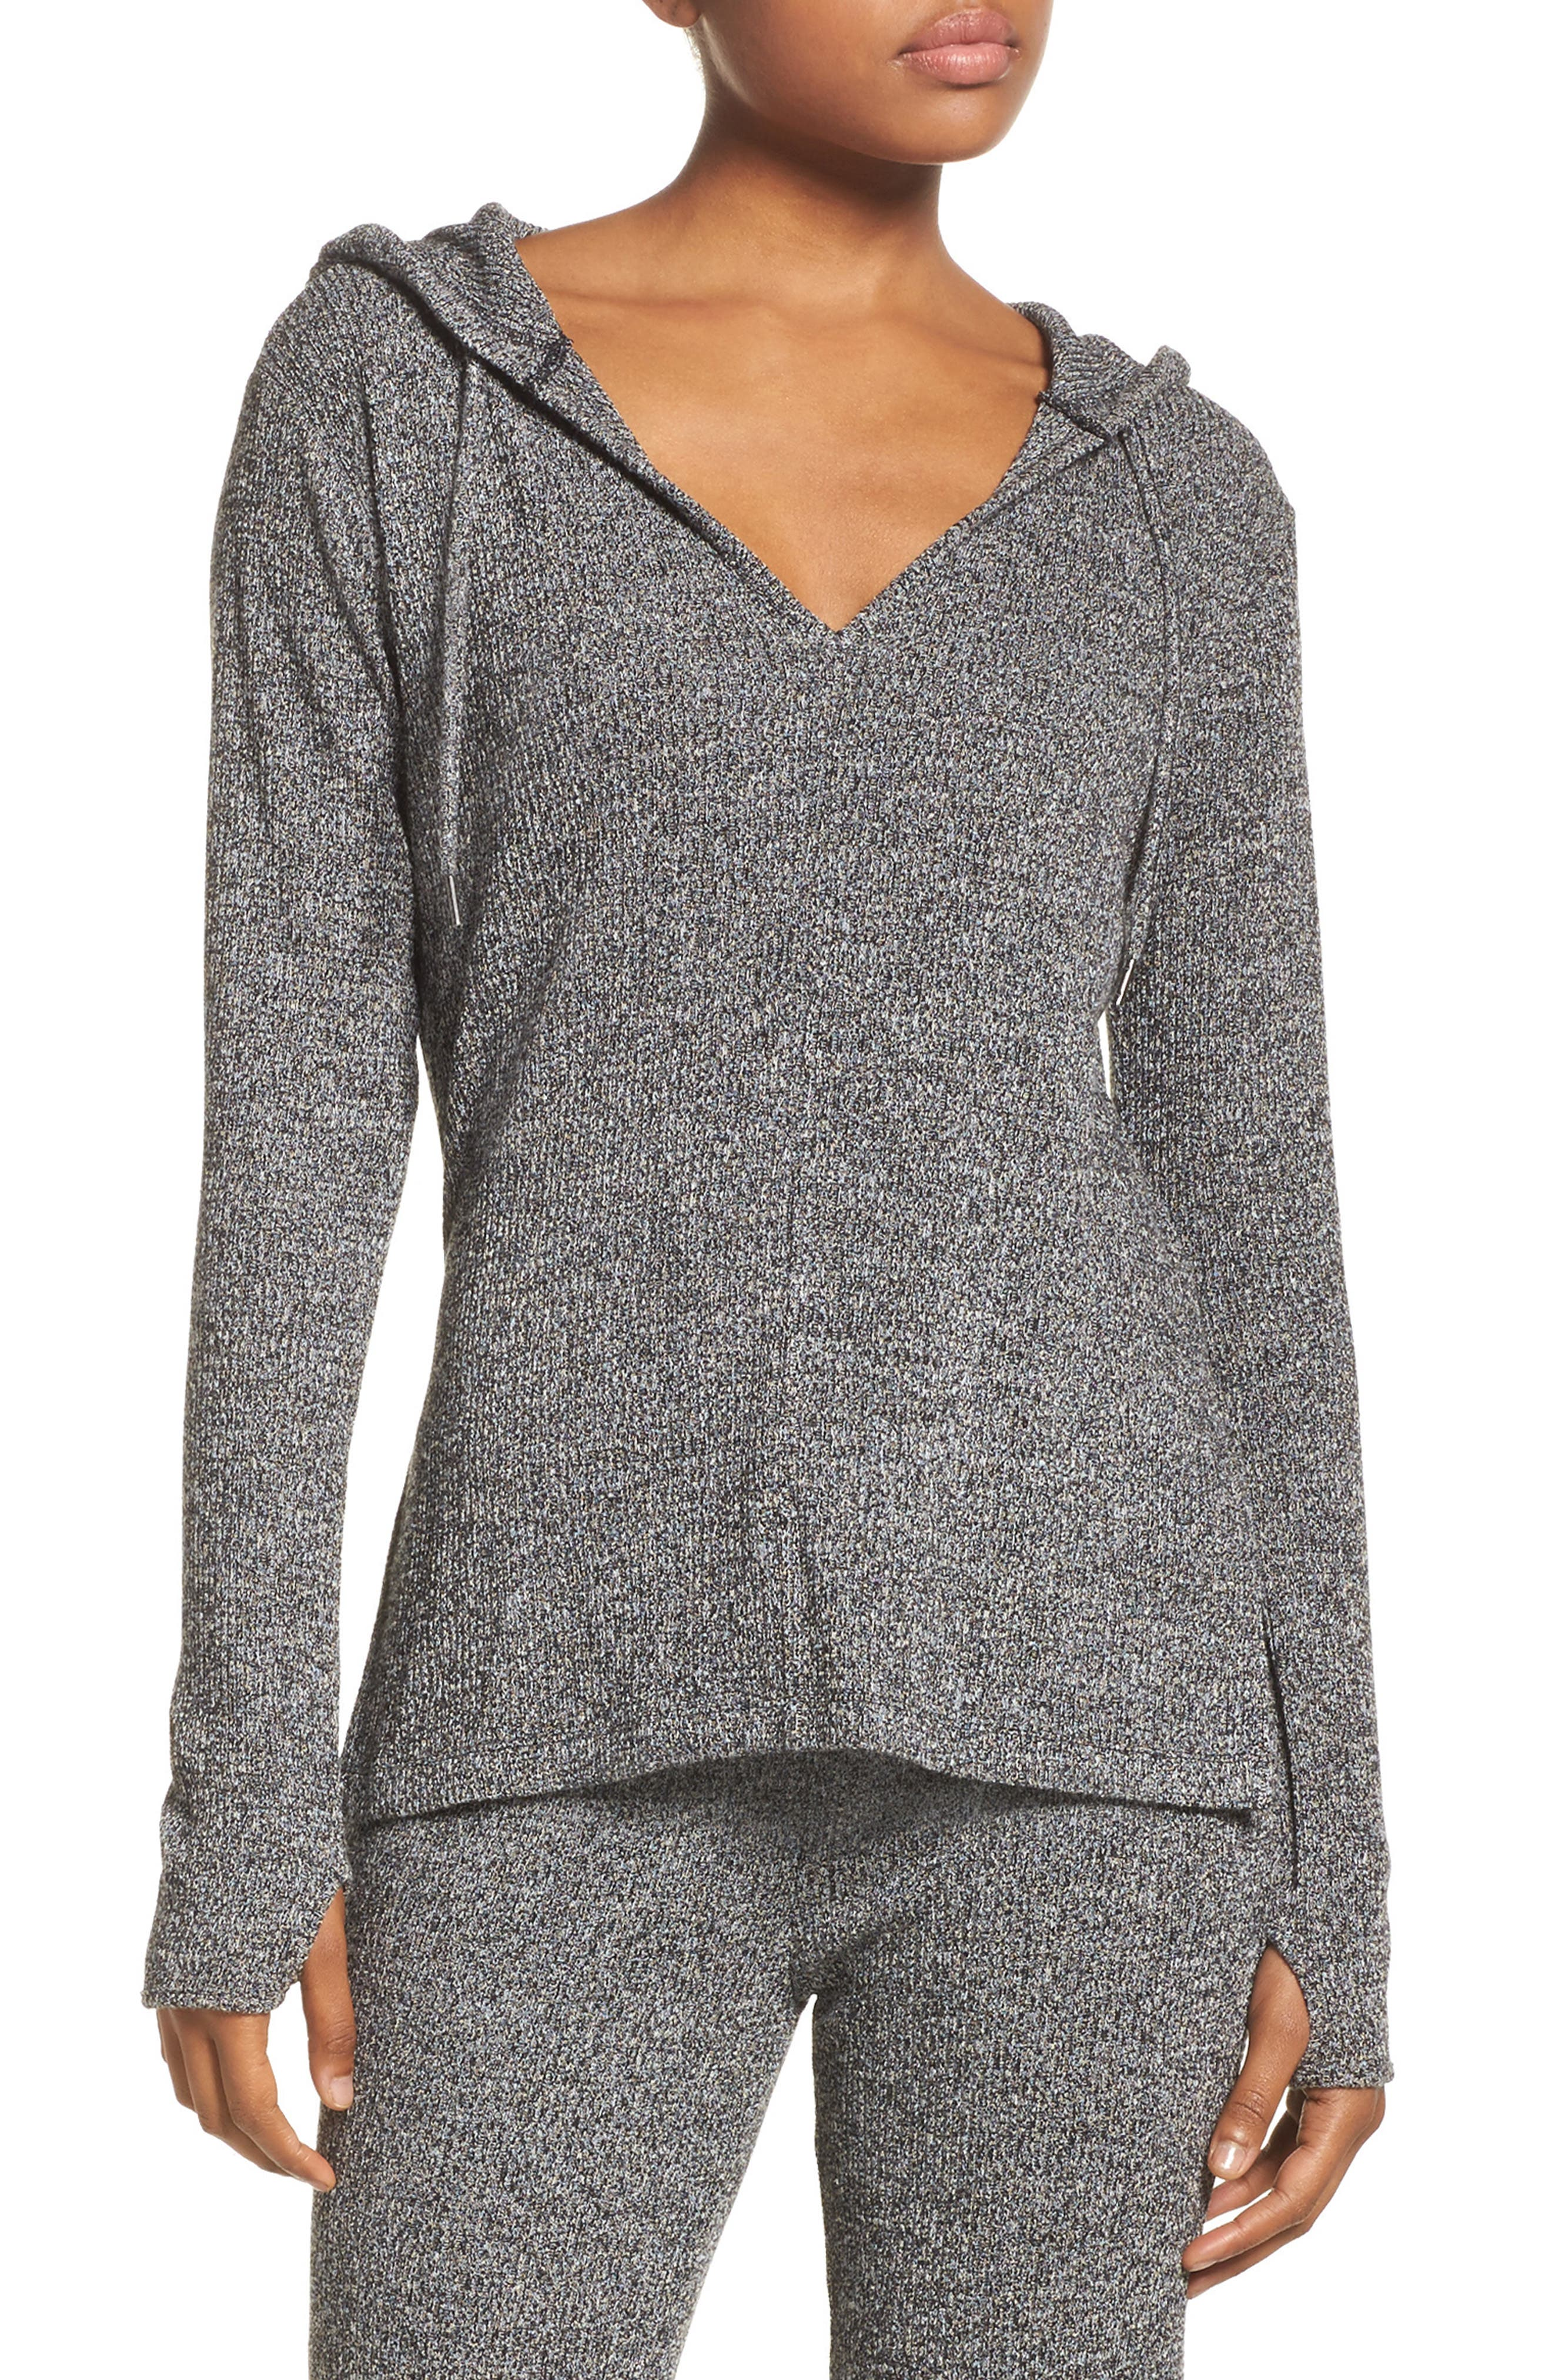 Mantra Hooded Pullover Top,                         Main,                         color, Black Heather